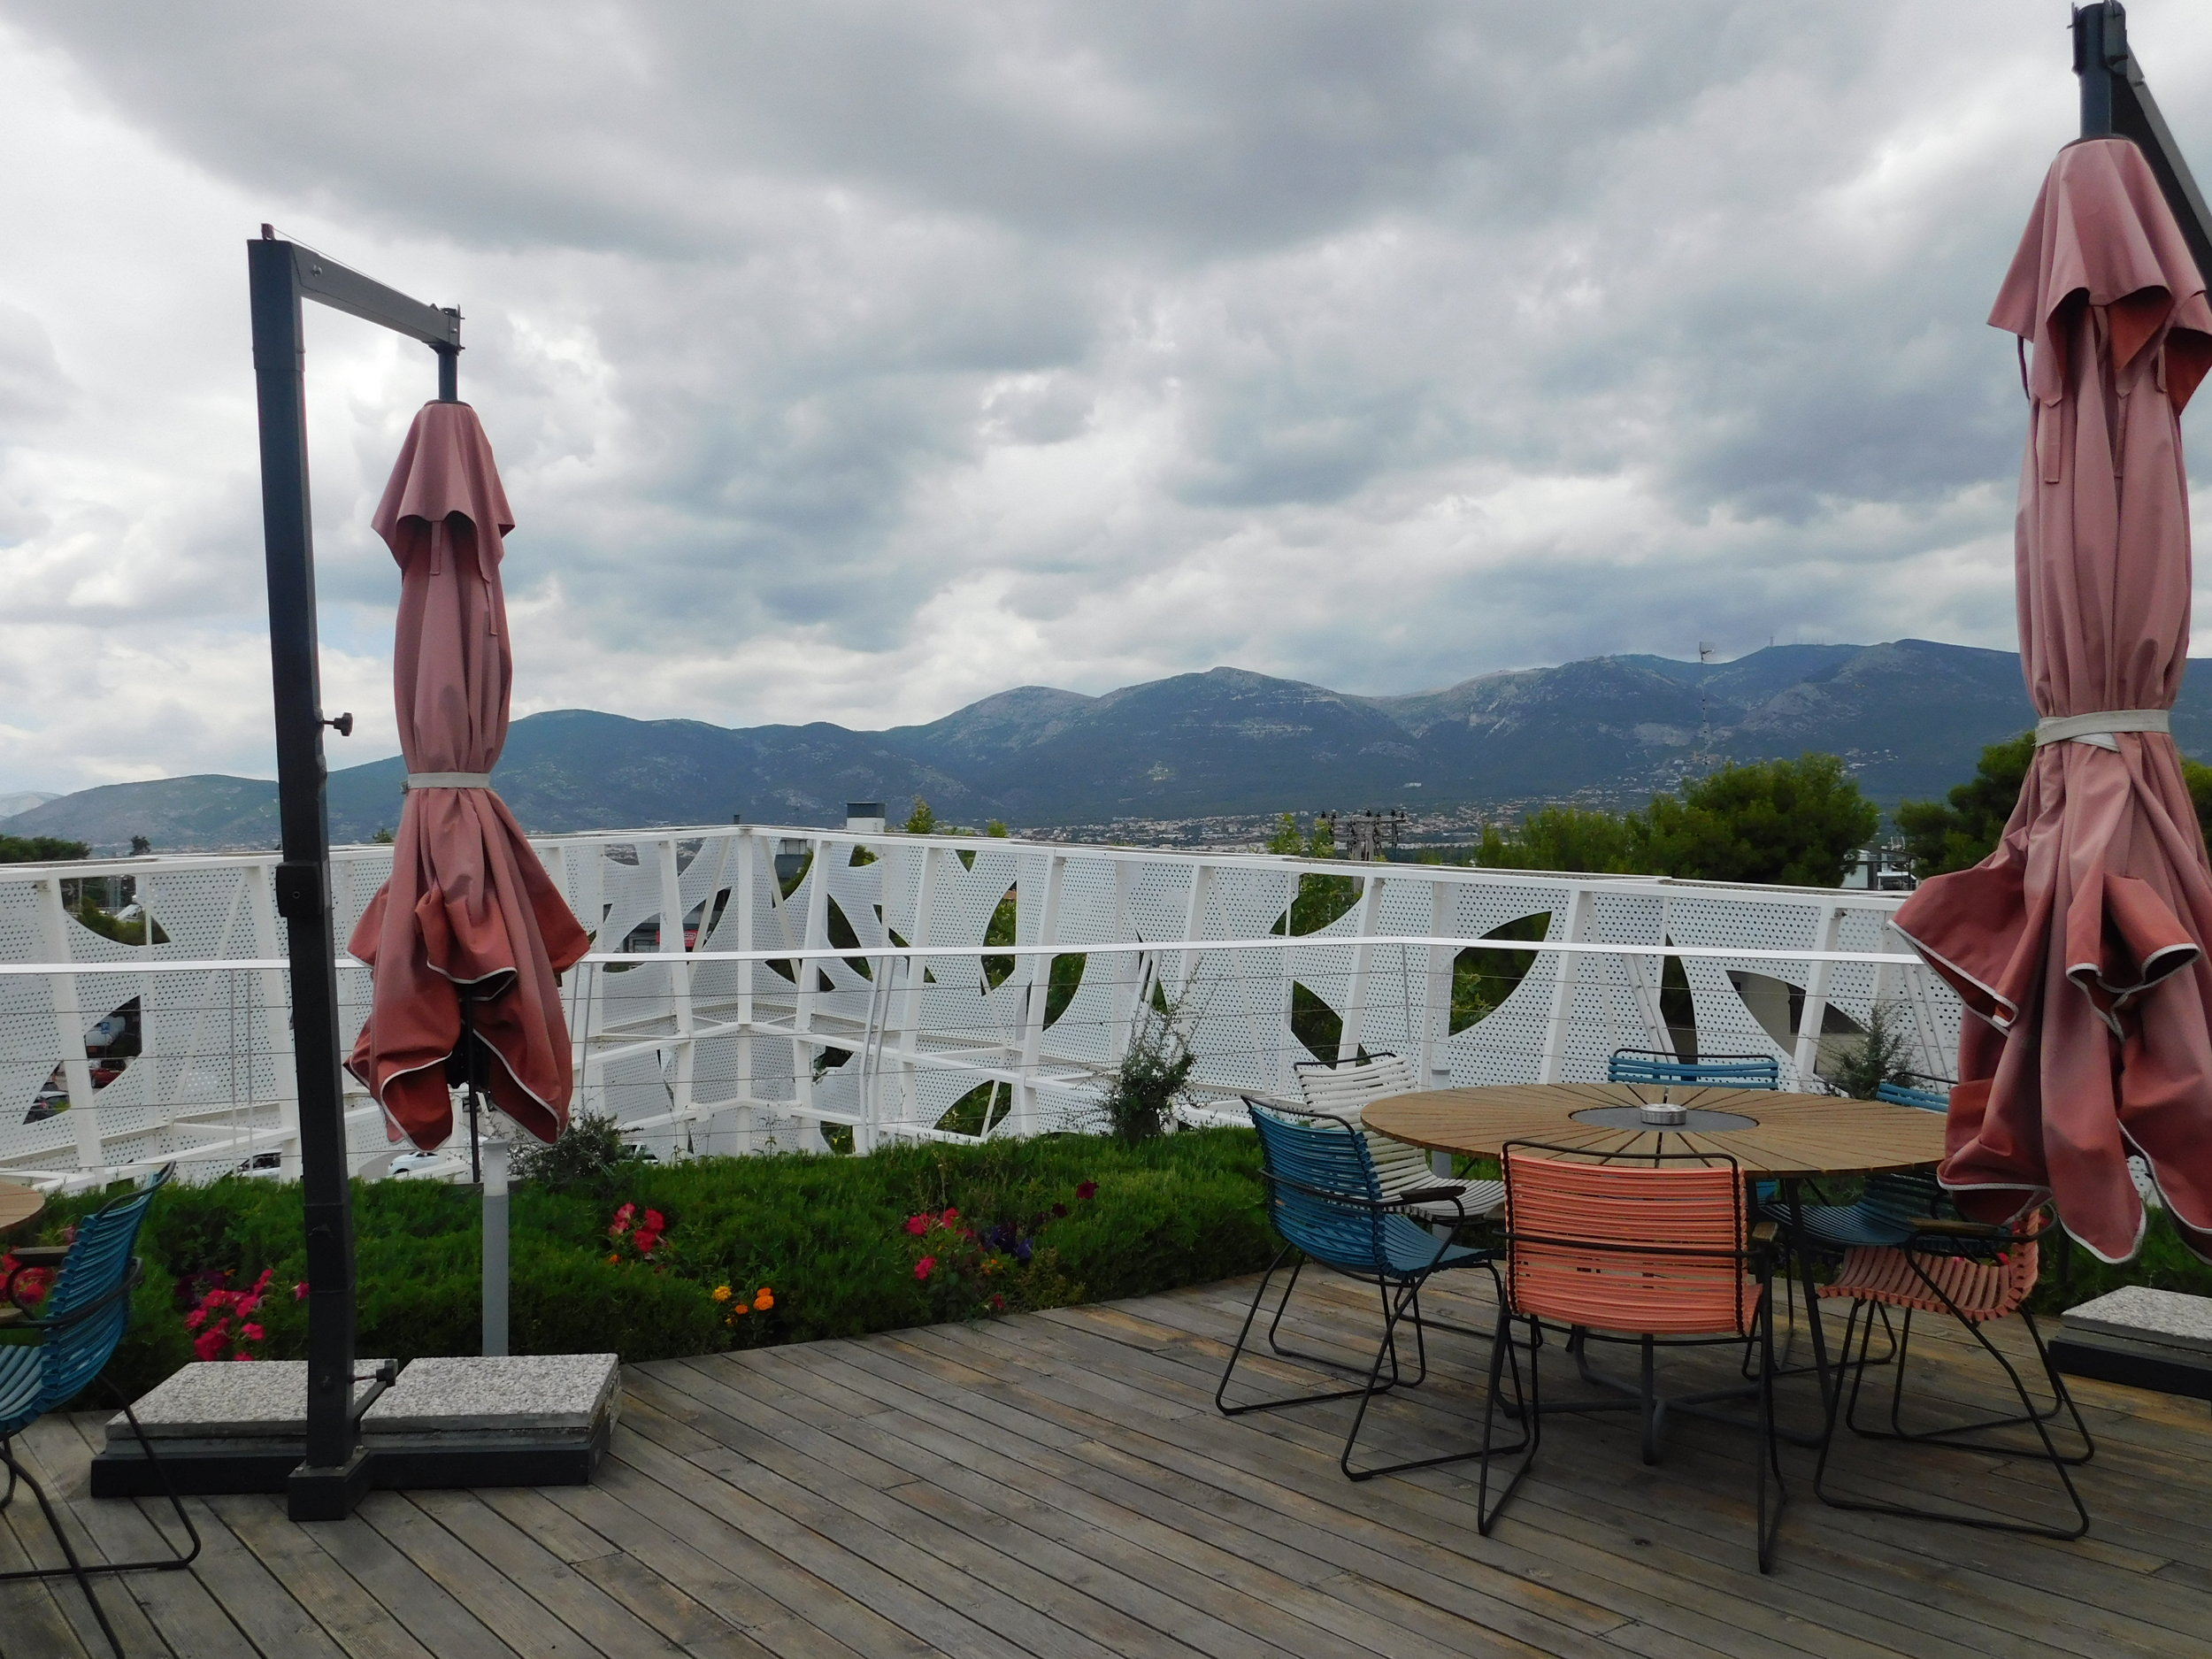 View from the large, roof top patio offering views of nearby mountains.